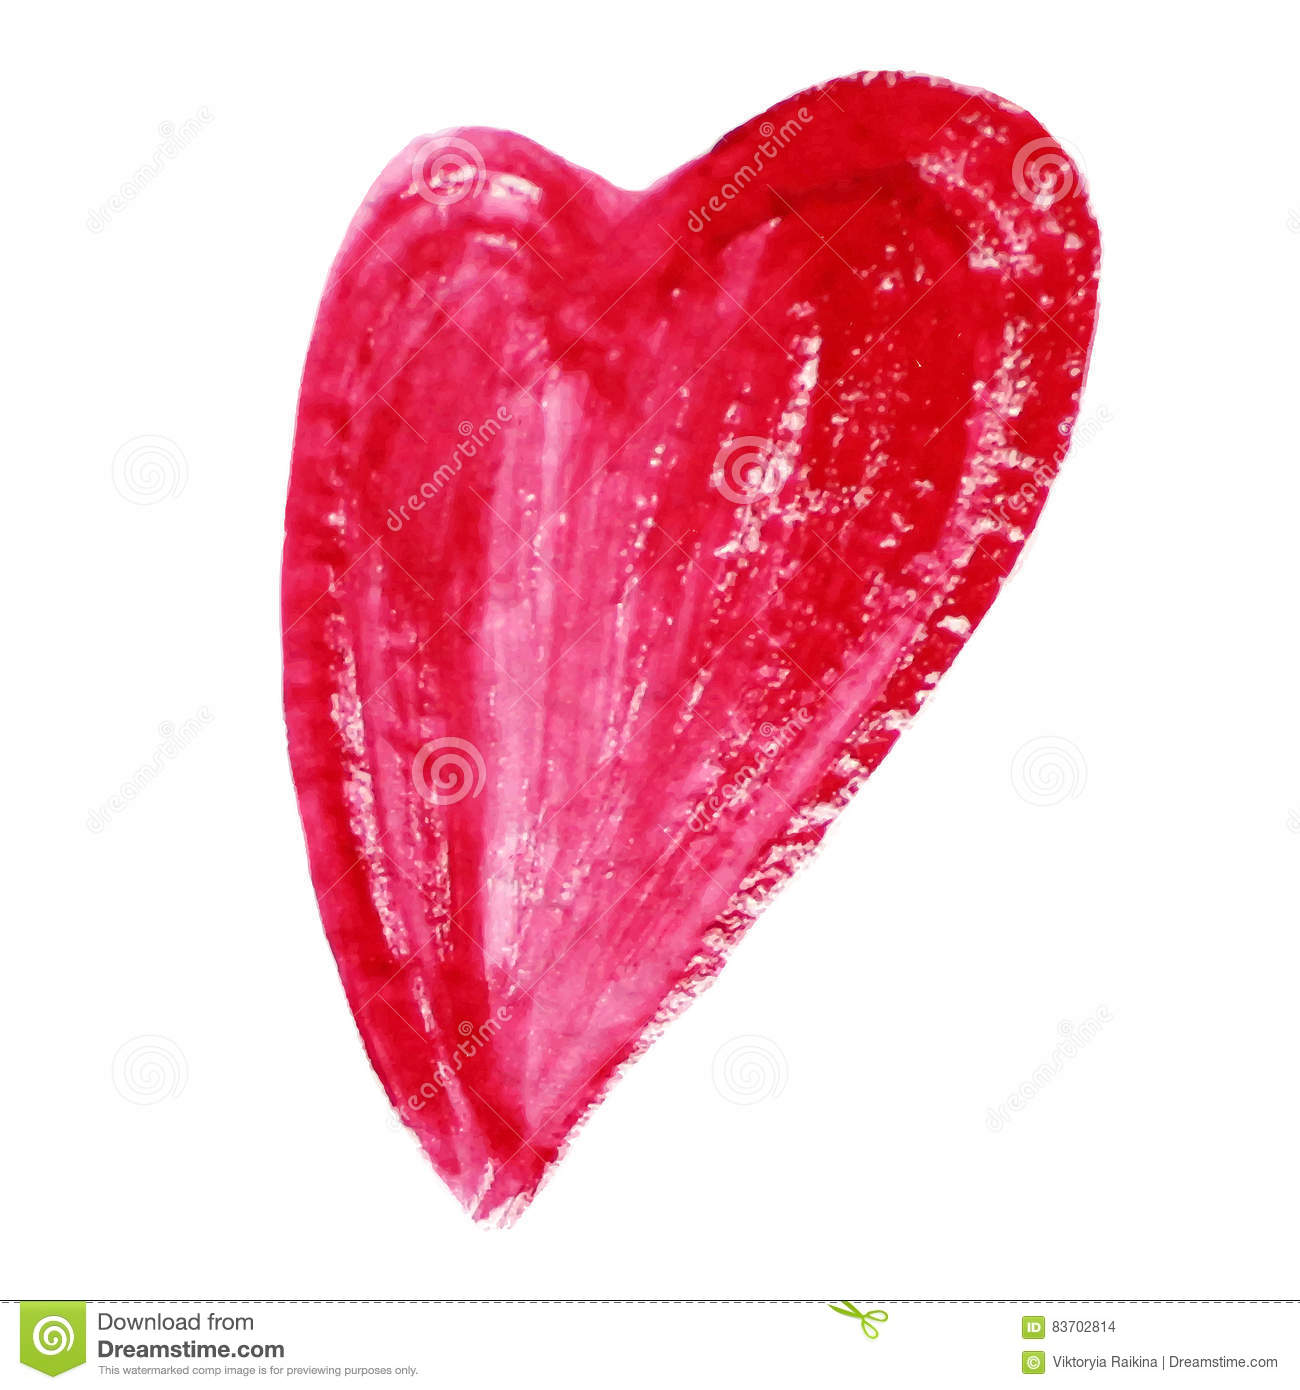 Watercolor red heart isolated on white background Holiday Valentines day card Ręka obraz - wektor